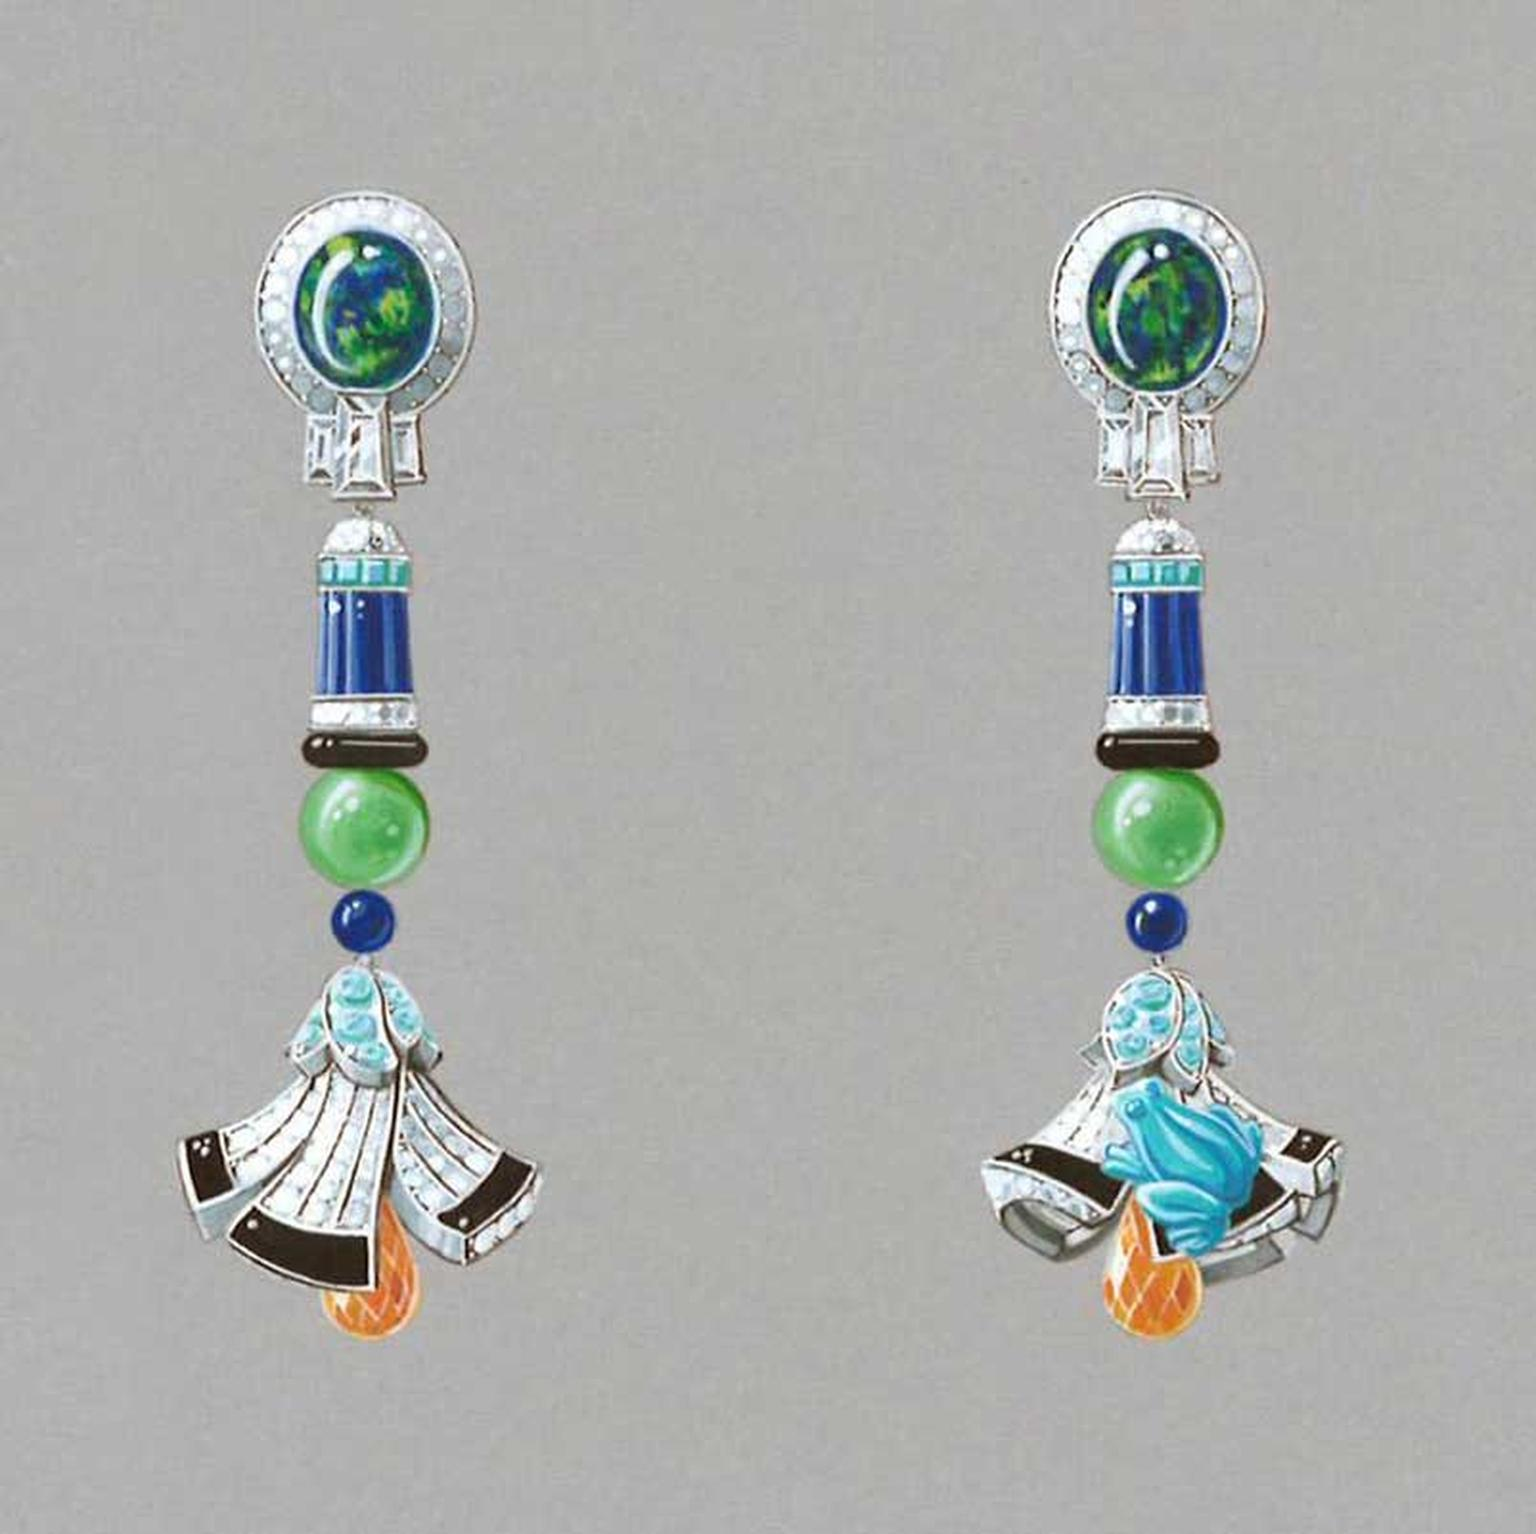 Van Cleef & Arpels Palais de la chance High Jewellery collection Lucky Legends, Everlasting Light long earrings